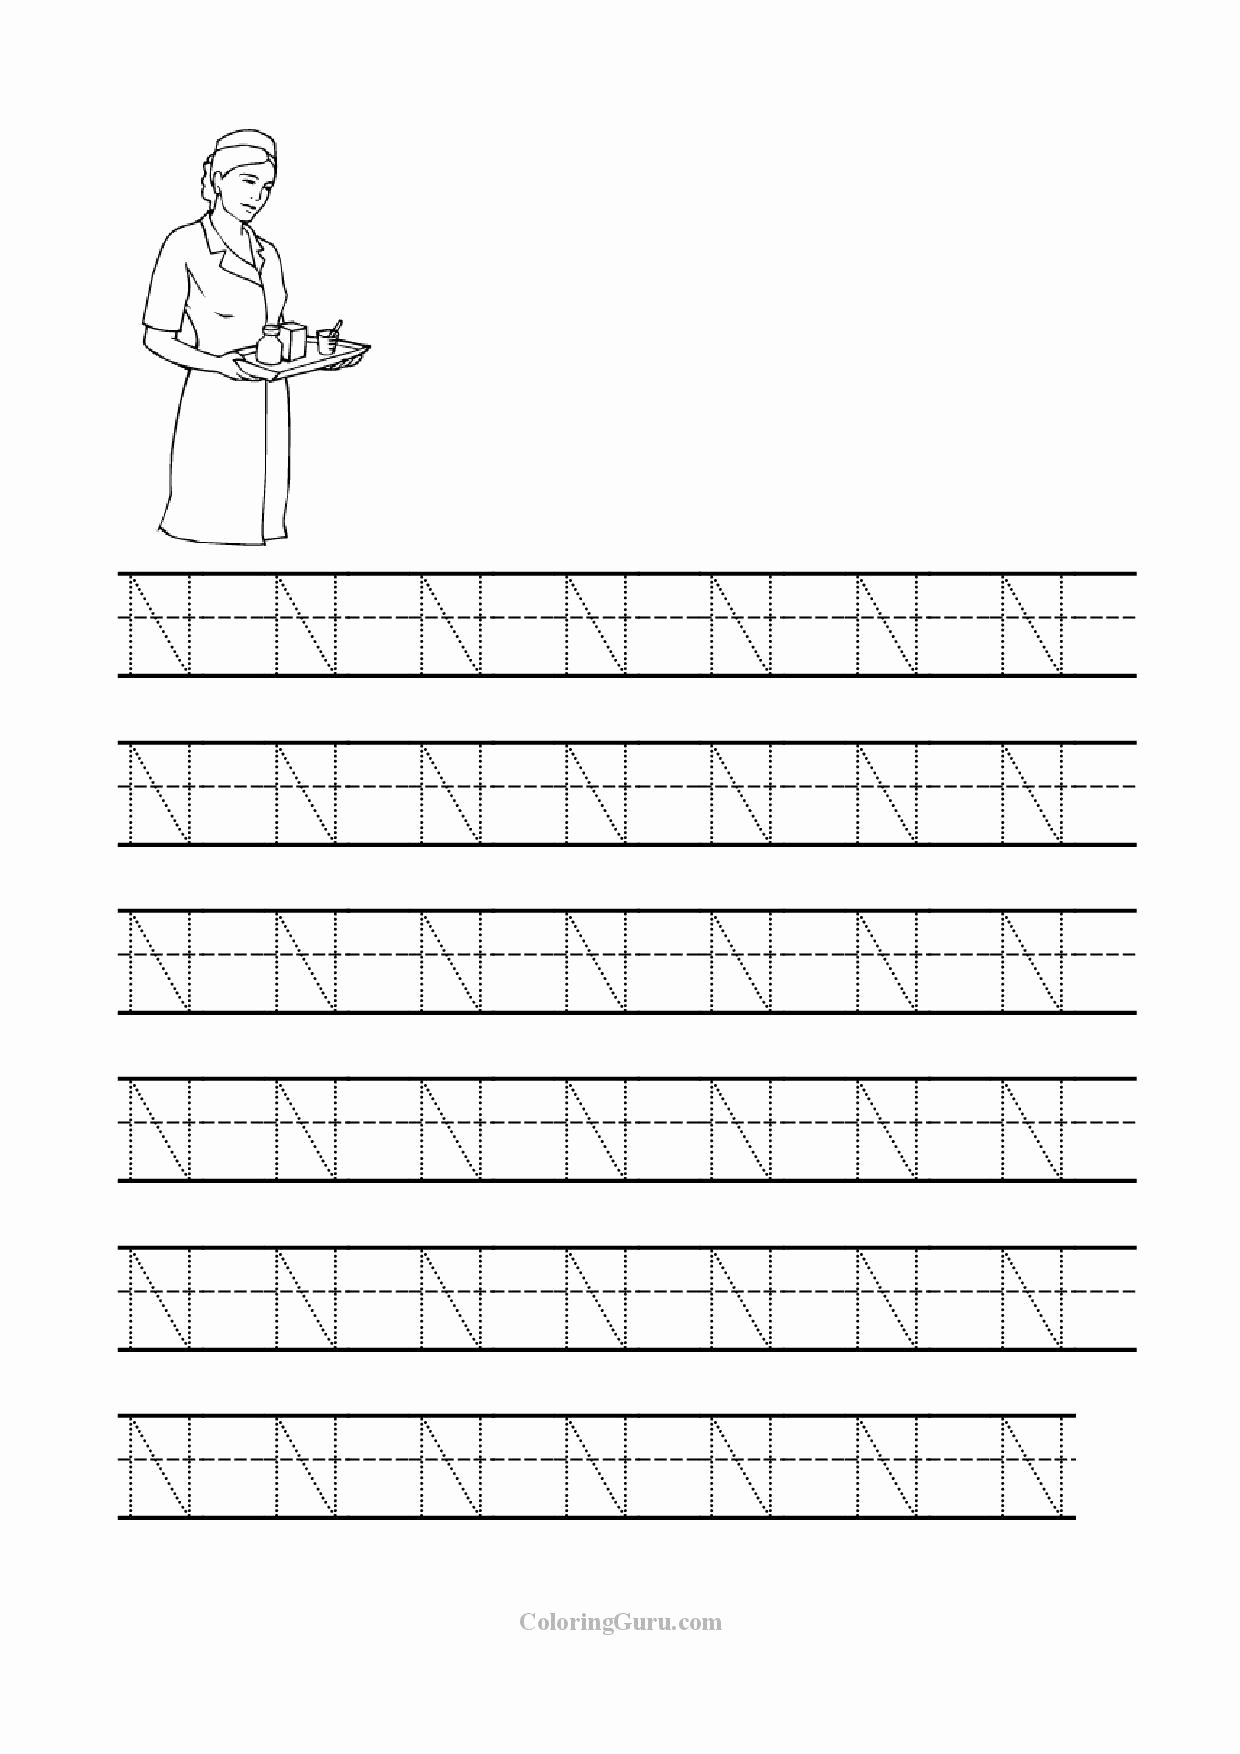 Letter N Tracing Worksheets Preschool Best Of Free Printable Tracing Letter N Worksheets for Preschool